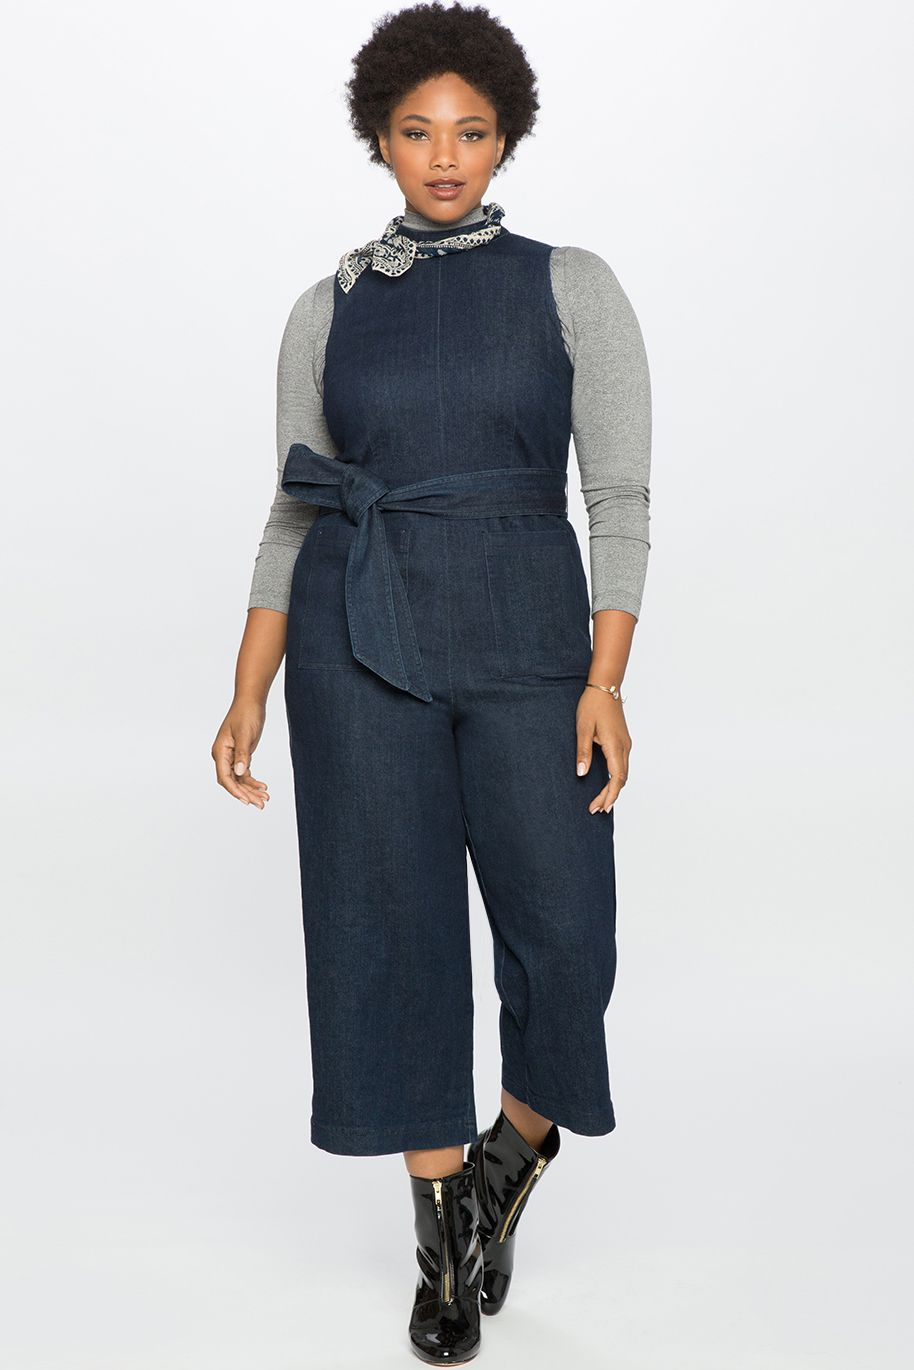 3f7a9bc9f57 Where to Shop for Petite Plus-Size Clothes - Racked